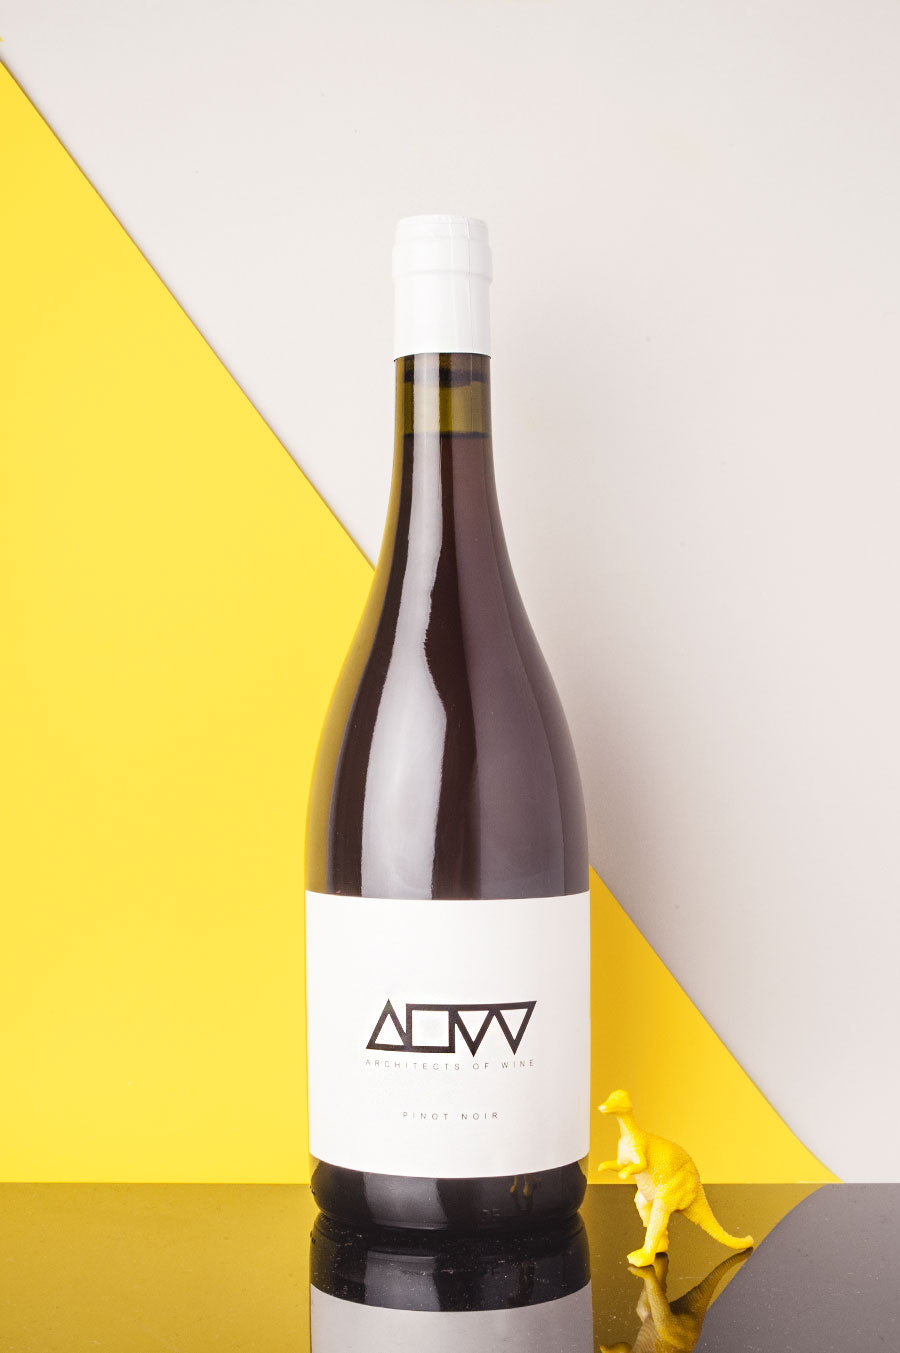 Architects of Wine Pinot Noir